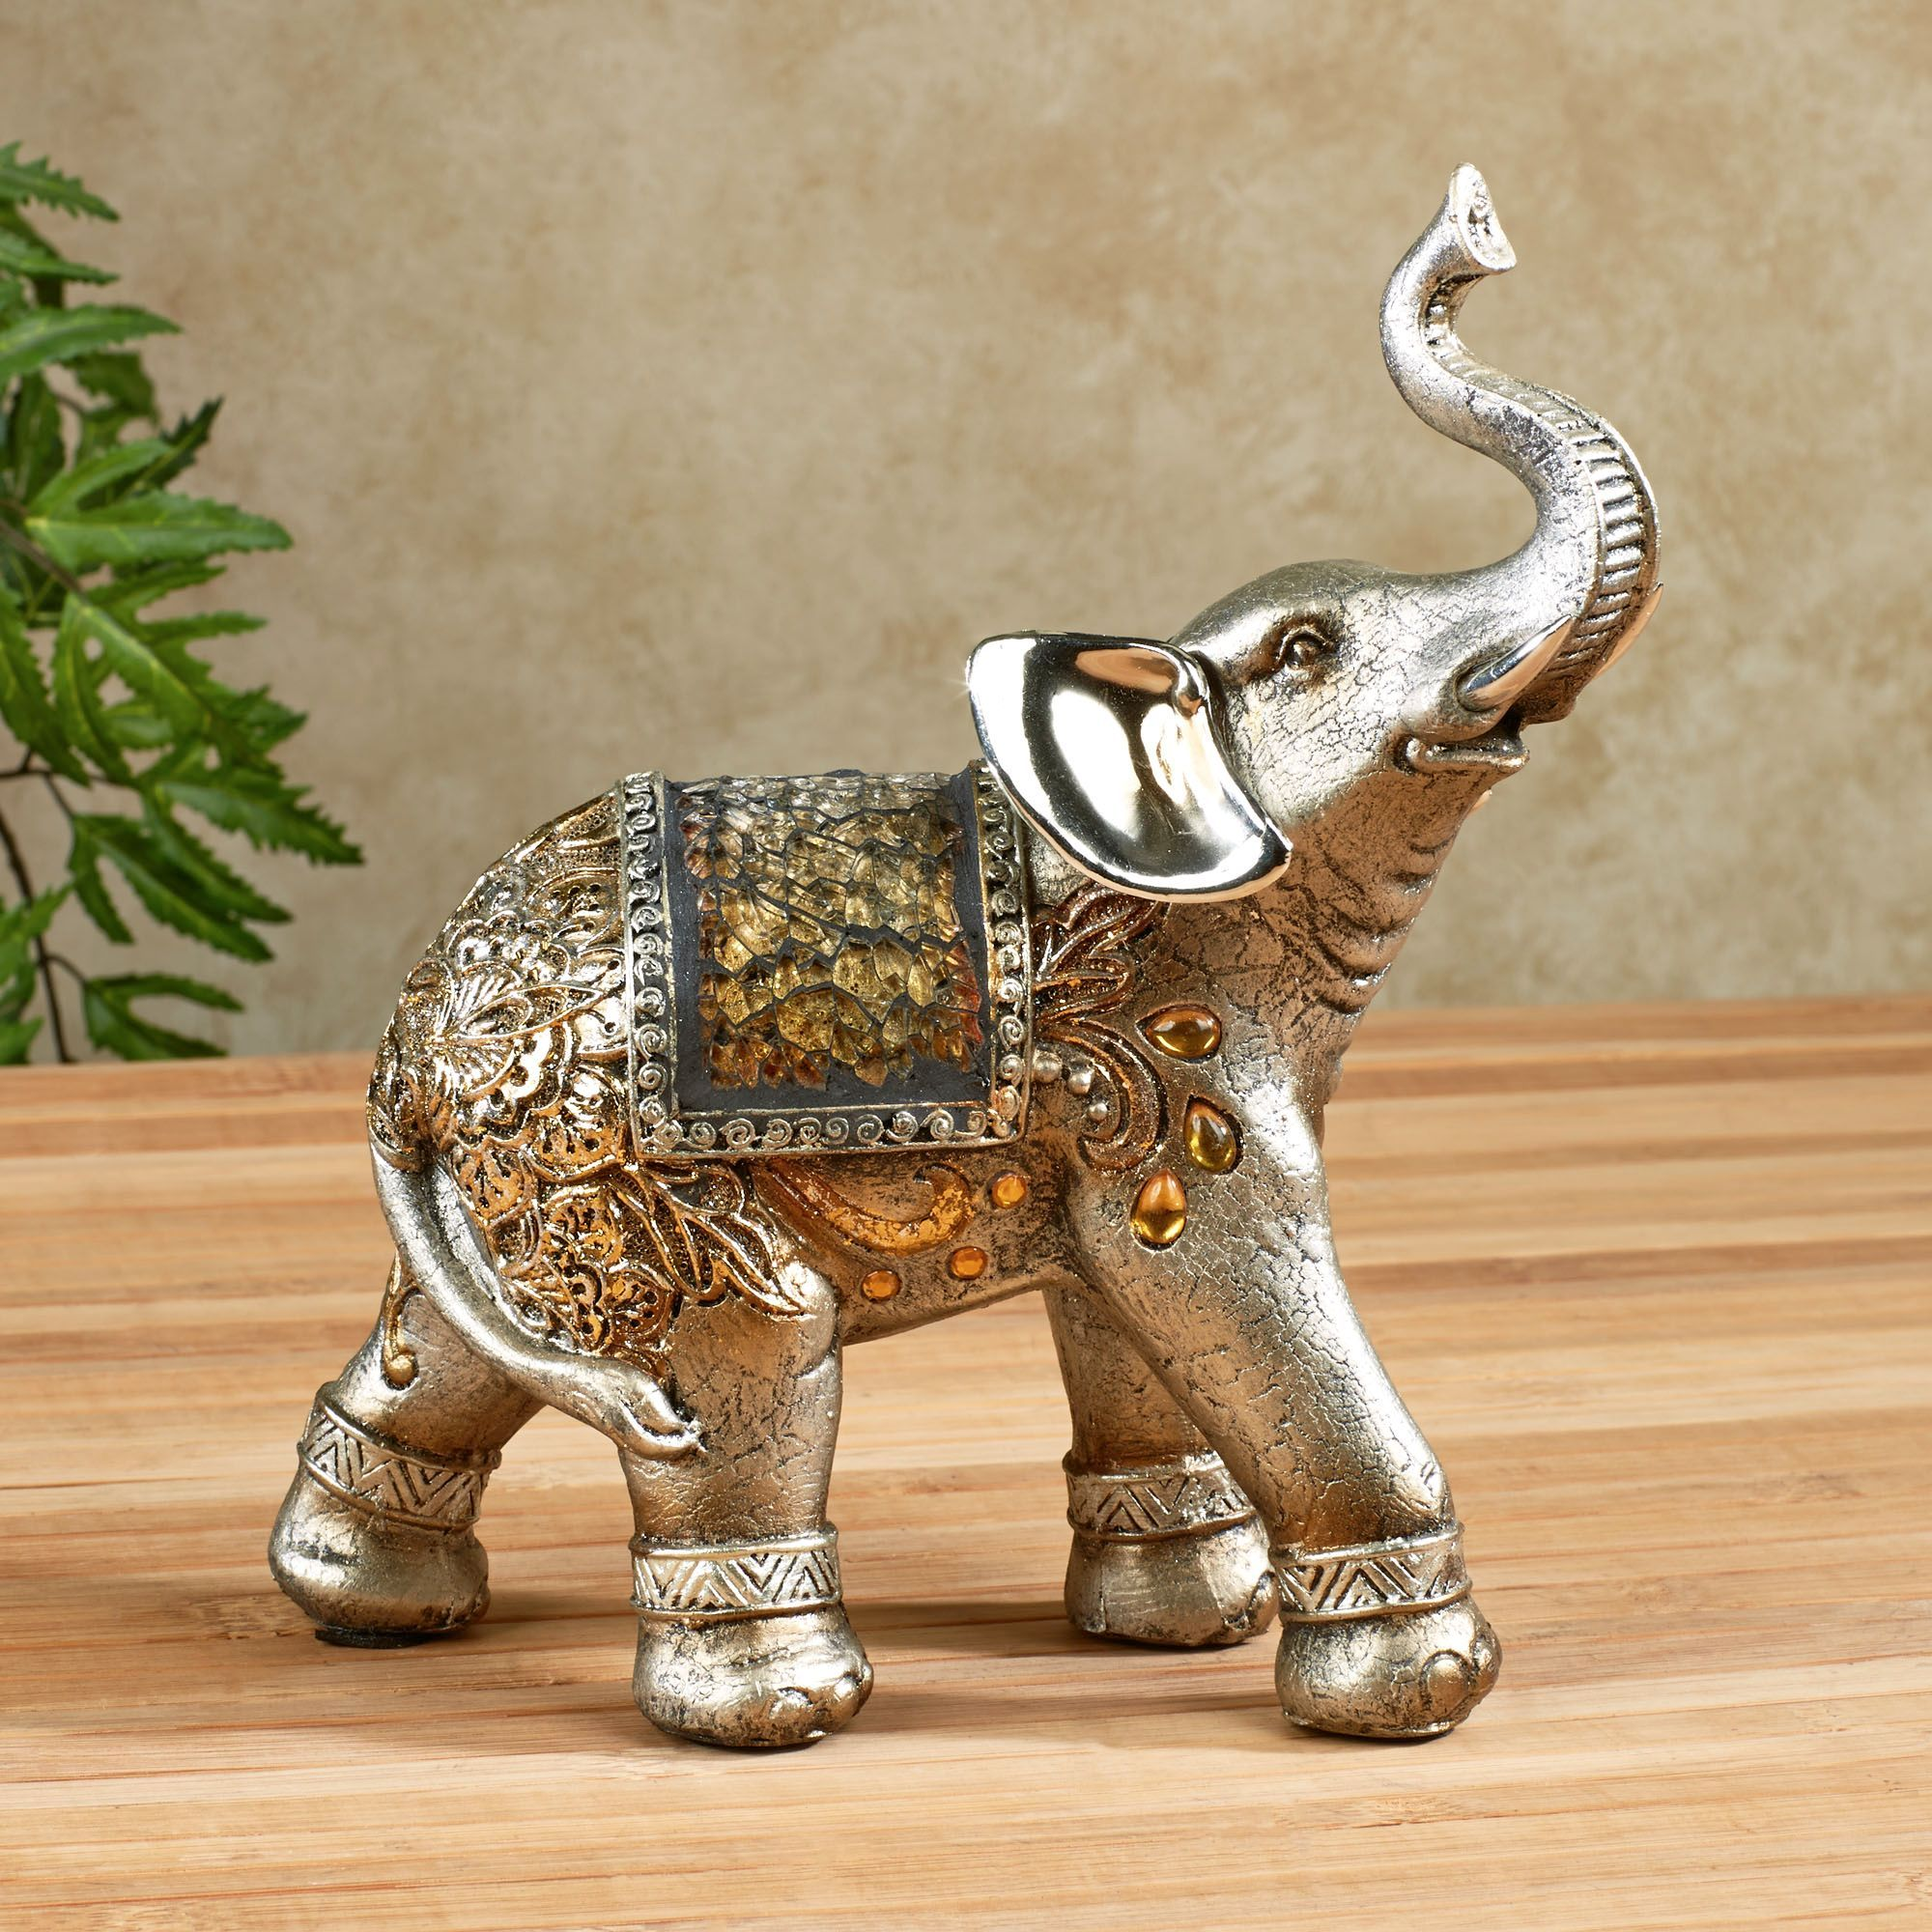 Wooden Elephants Figurines Bejeweled Mosaic Elephant Figurines For Home Decoration